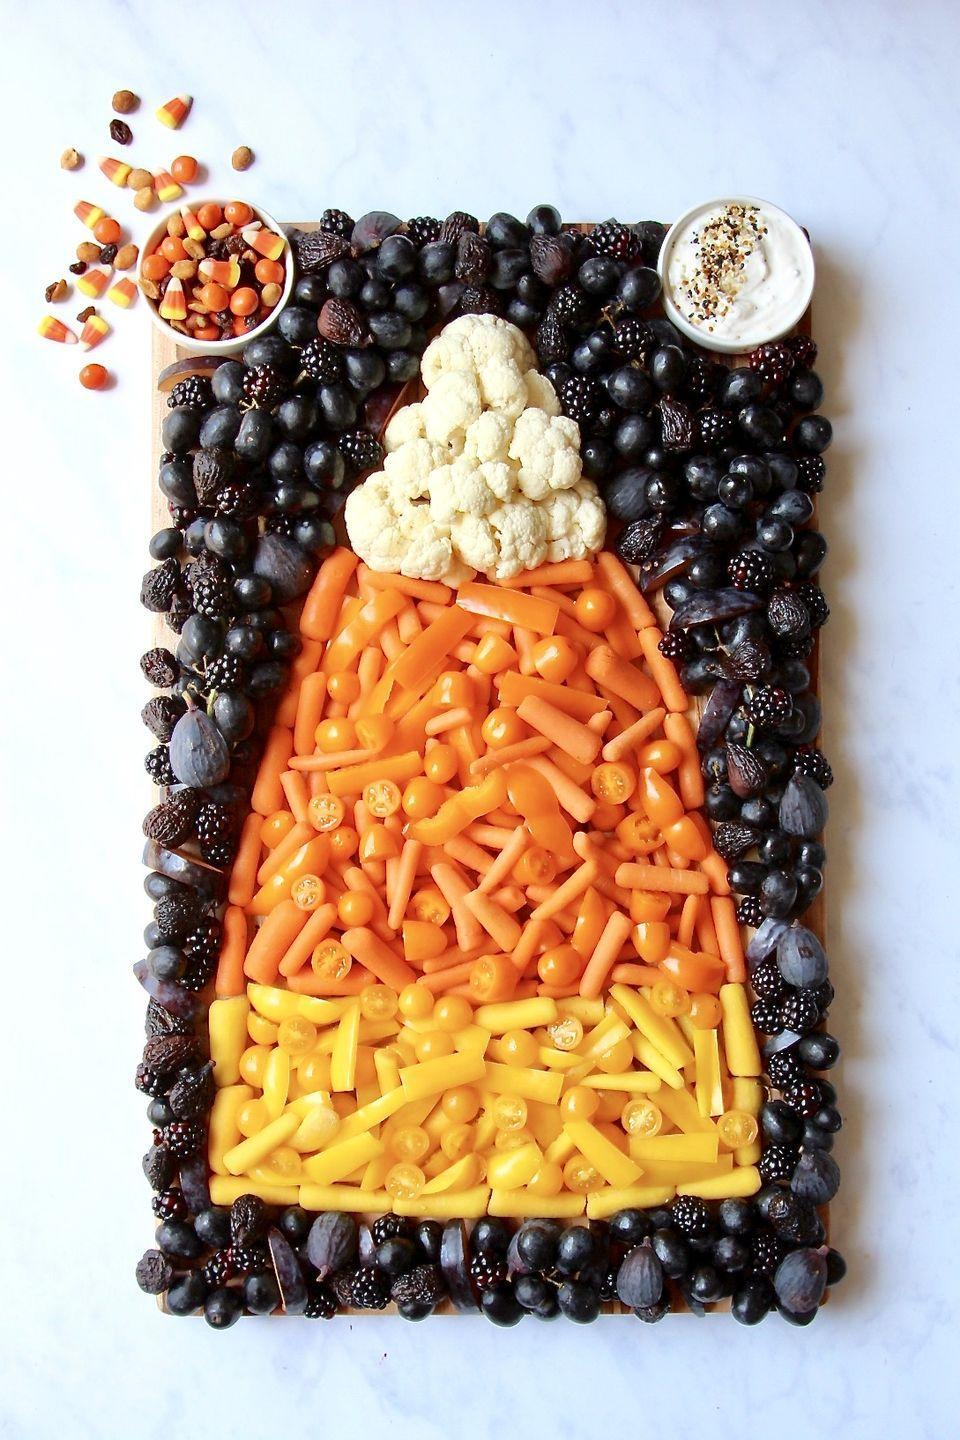 """<p>Kick off a Halloween-themed dinner with a fun and colorful budget-friendly snack board that comes together in just a few minutes, but looks like you spent hours perfecting. </p><p><a class=""""link rapid-noclick-resp"""" href=""""https://thebakermama.com/recipes/candy-corn-snack-board/"""" rel=""""nofollow noopener"""" target=""""_blank"""" data-ylk=""""slk:GET THE RECIPE"""">GET THE RECIPE</a></p>"""